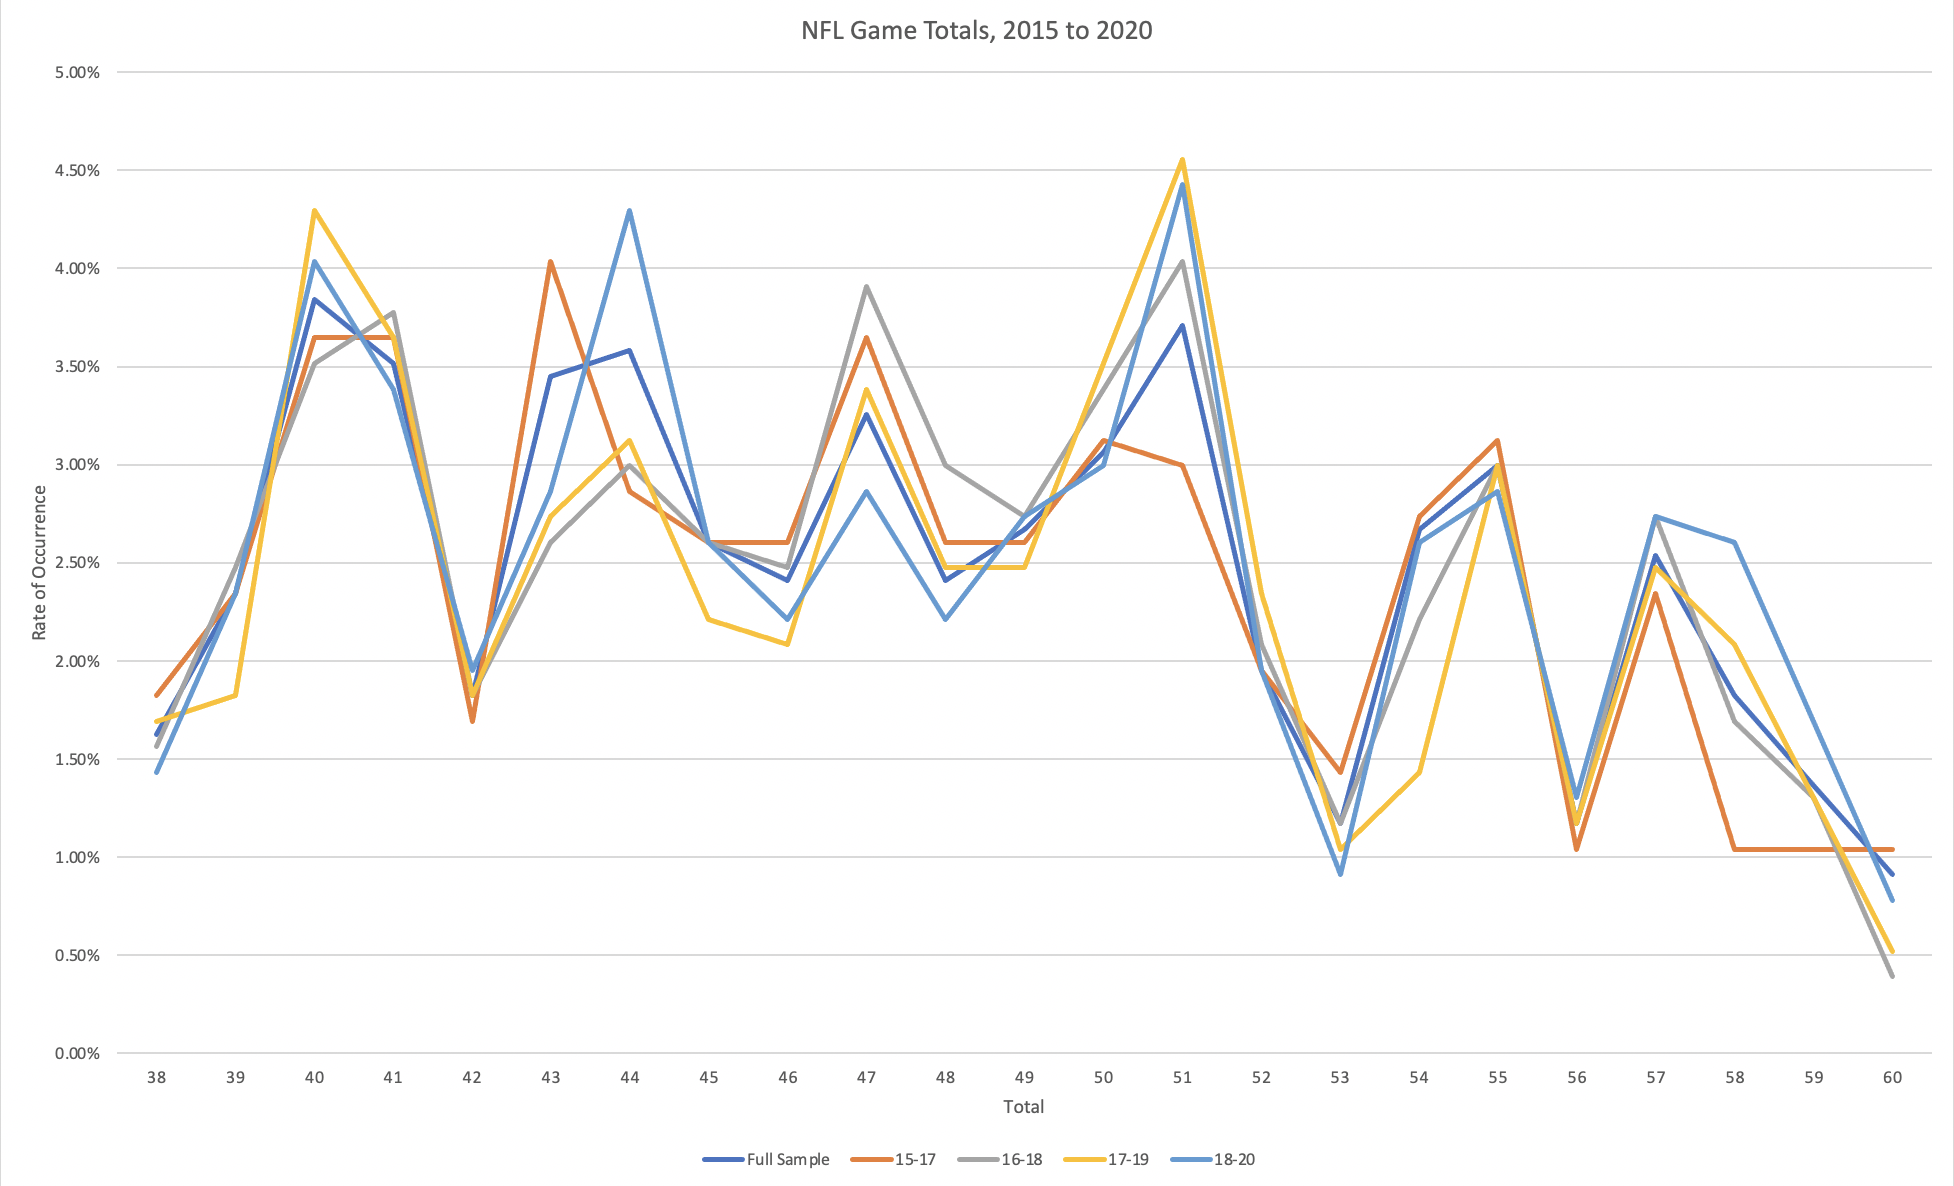 NFL Game Totals, 2015 to 2020